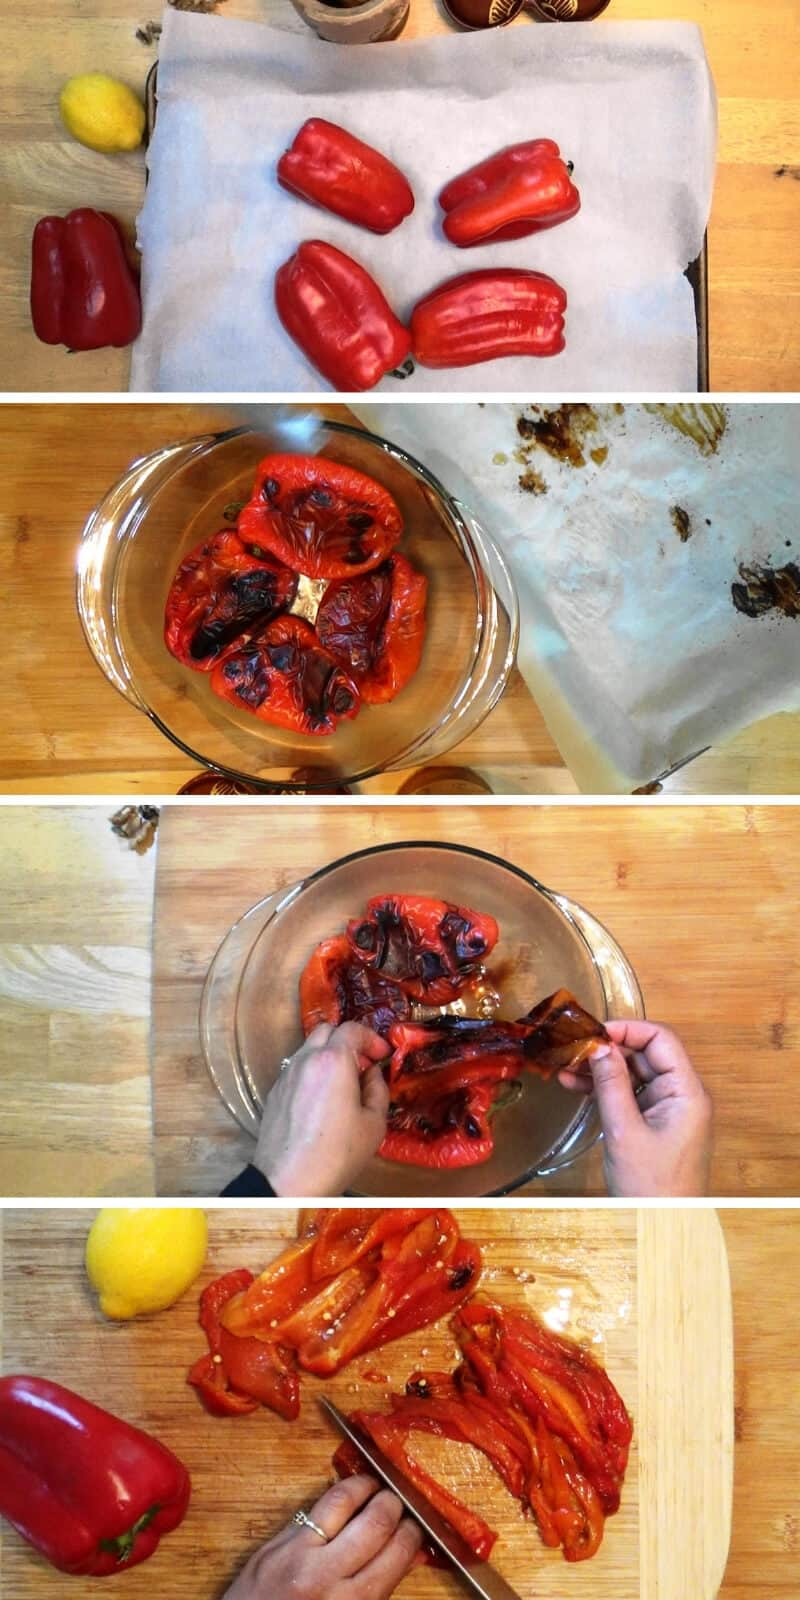 Red bell peppers are roasted and prepared to make muhammara.